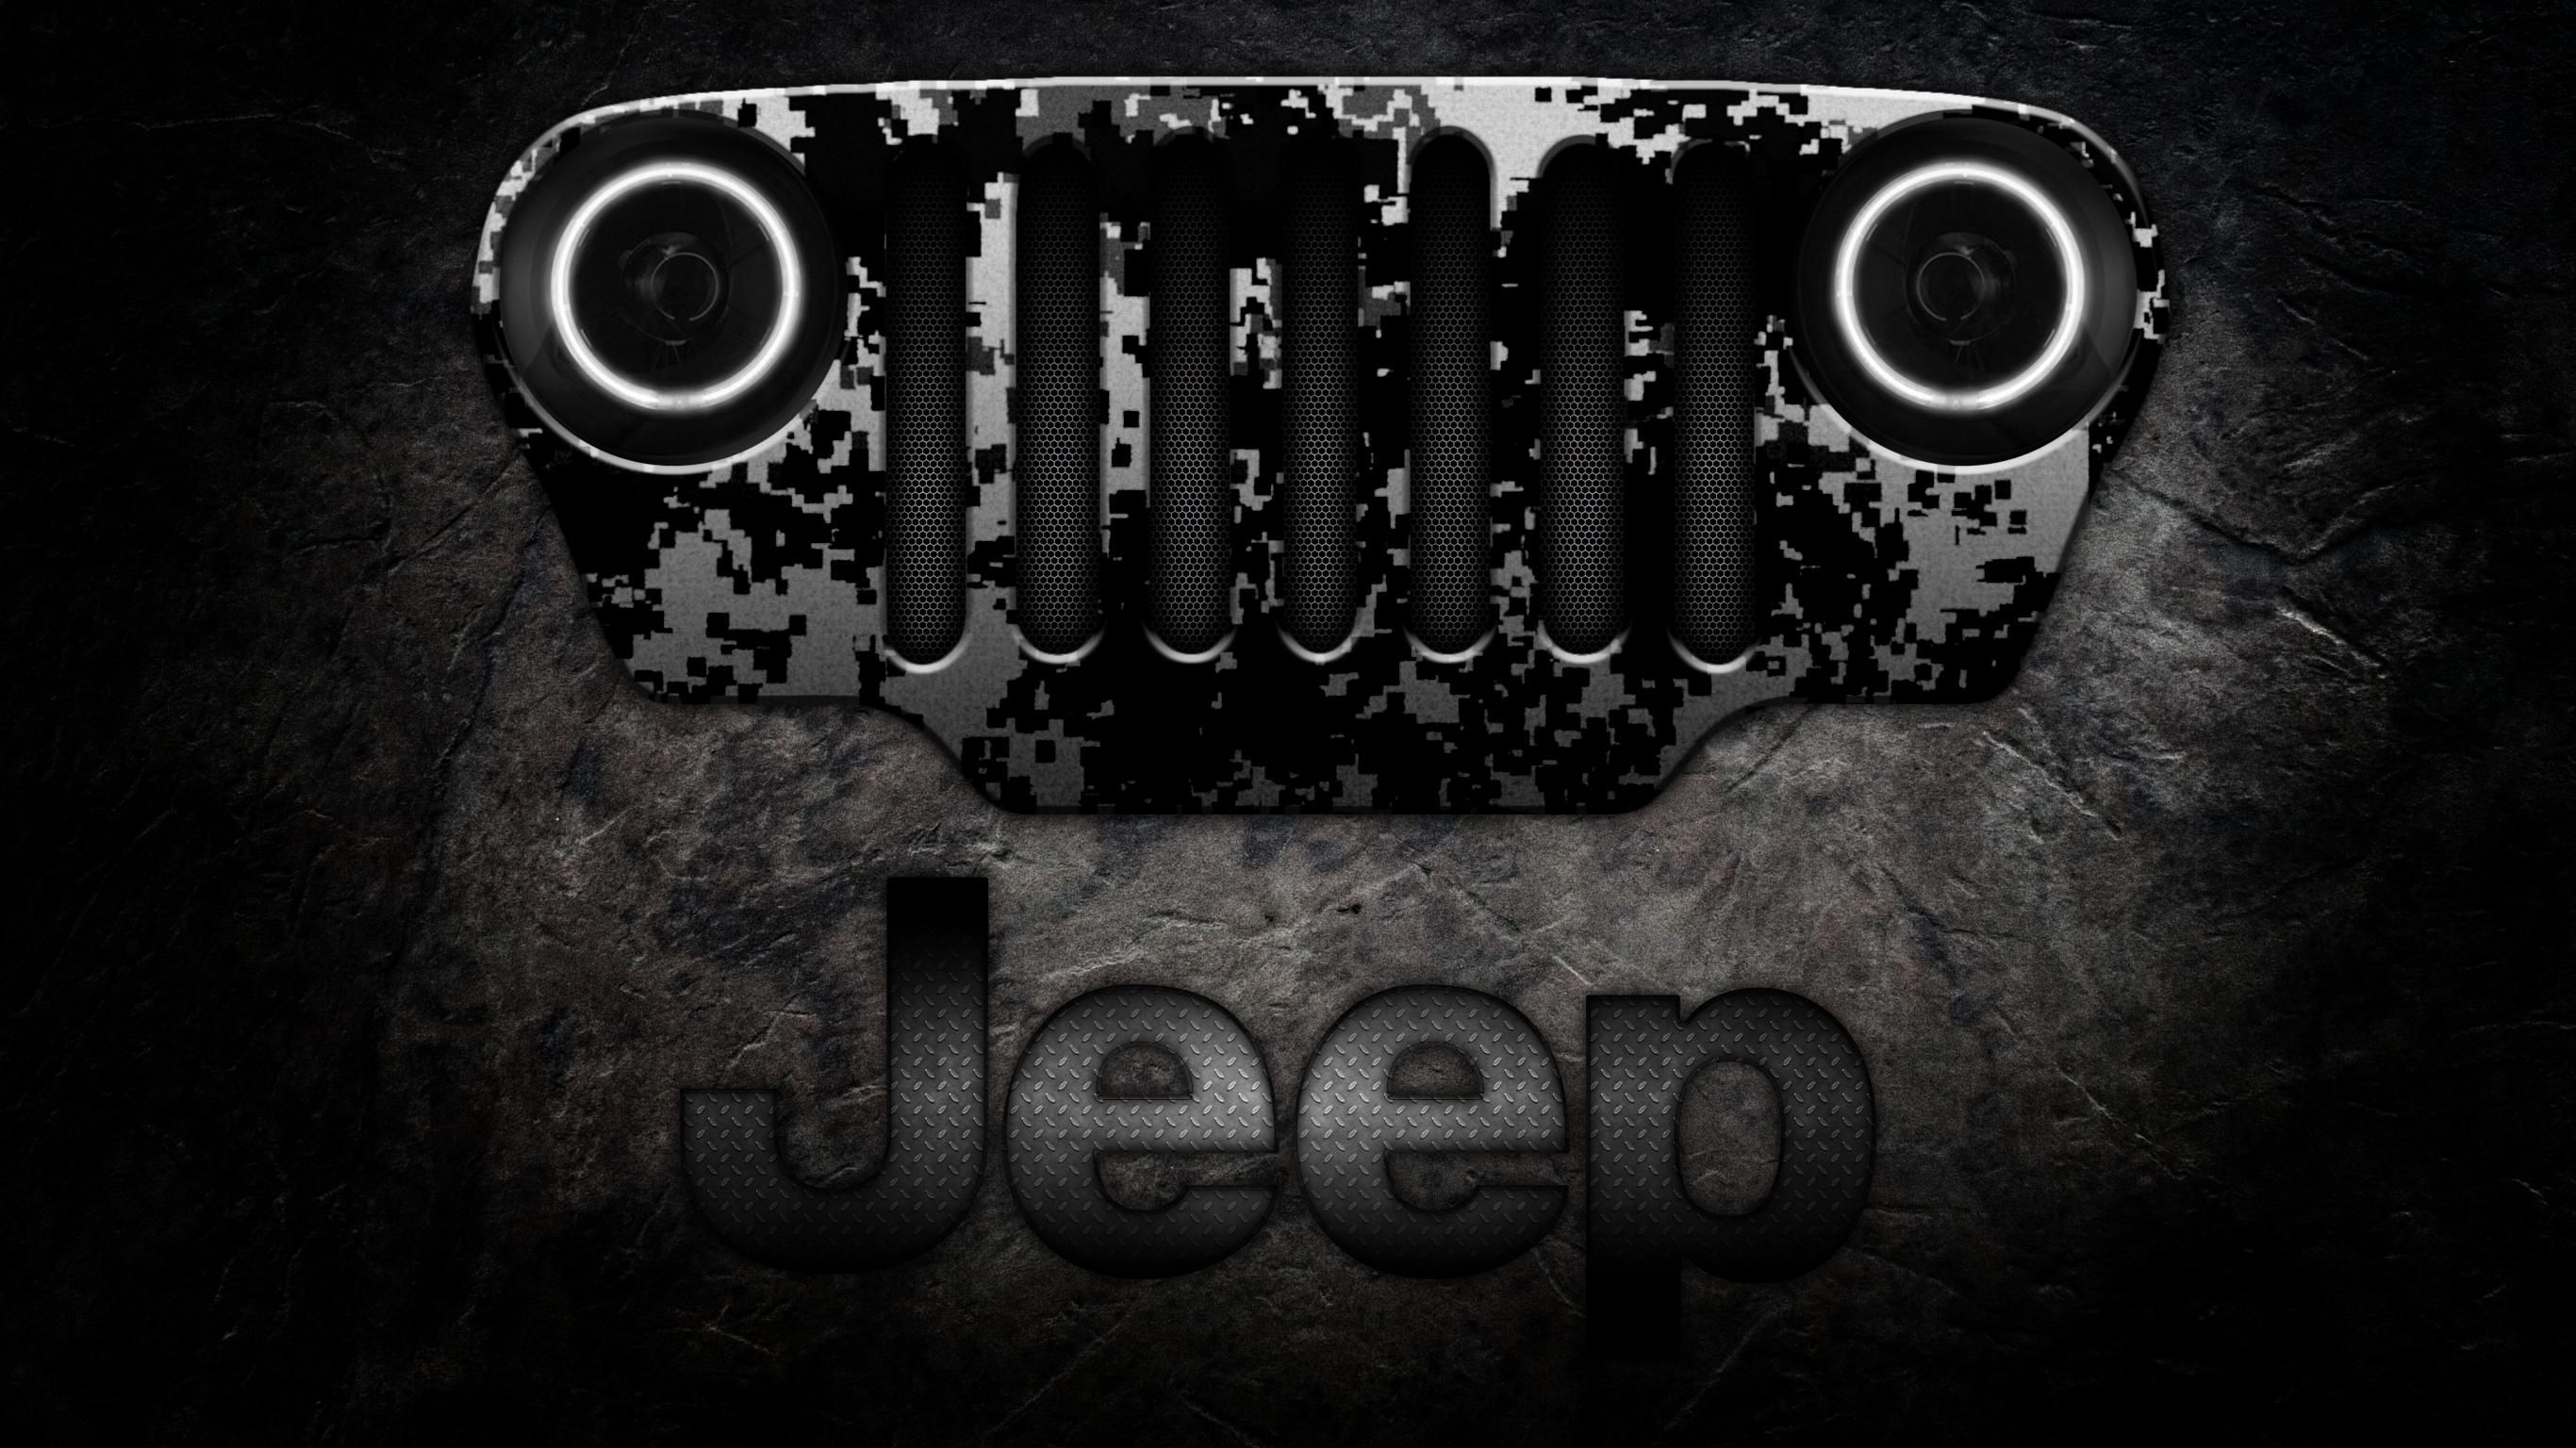 Jeep Logo Wallpapers Images Download Tools Jeep wallpaper 2732x1536